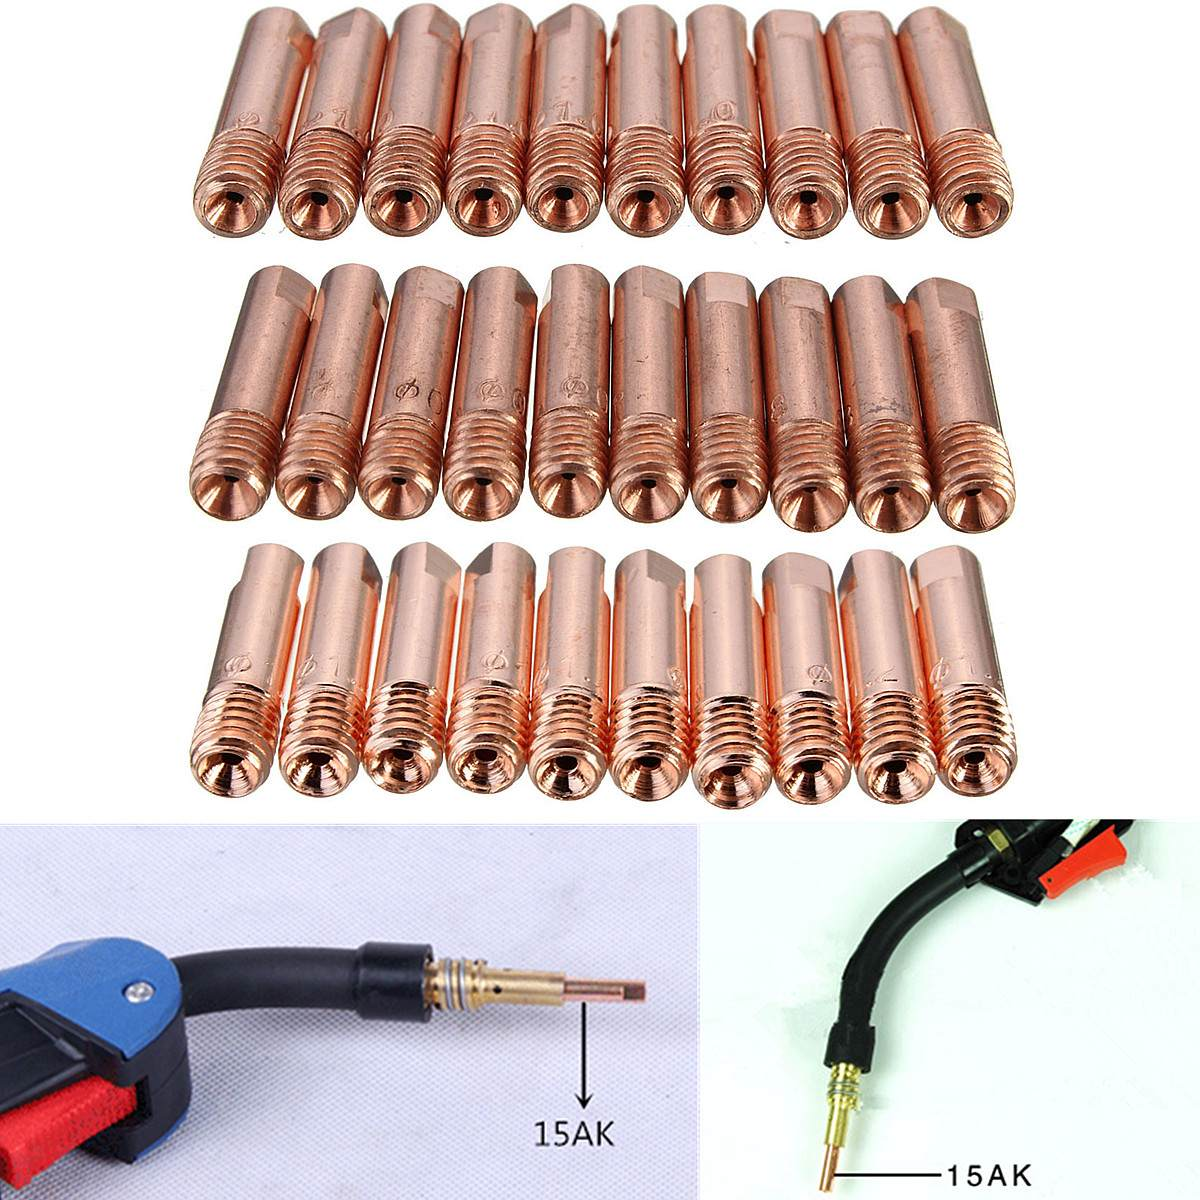 FORGELO 10pcs MB-15AK M6 25mm MIG/MAG Welding Nozzles Contact Tip Gas Welding Torch Nozzle 0.8/1.0/1.2mm Tools